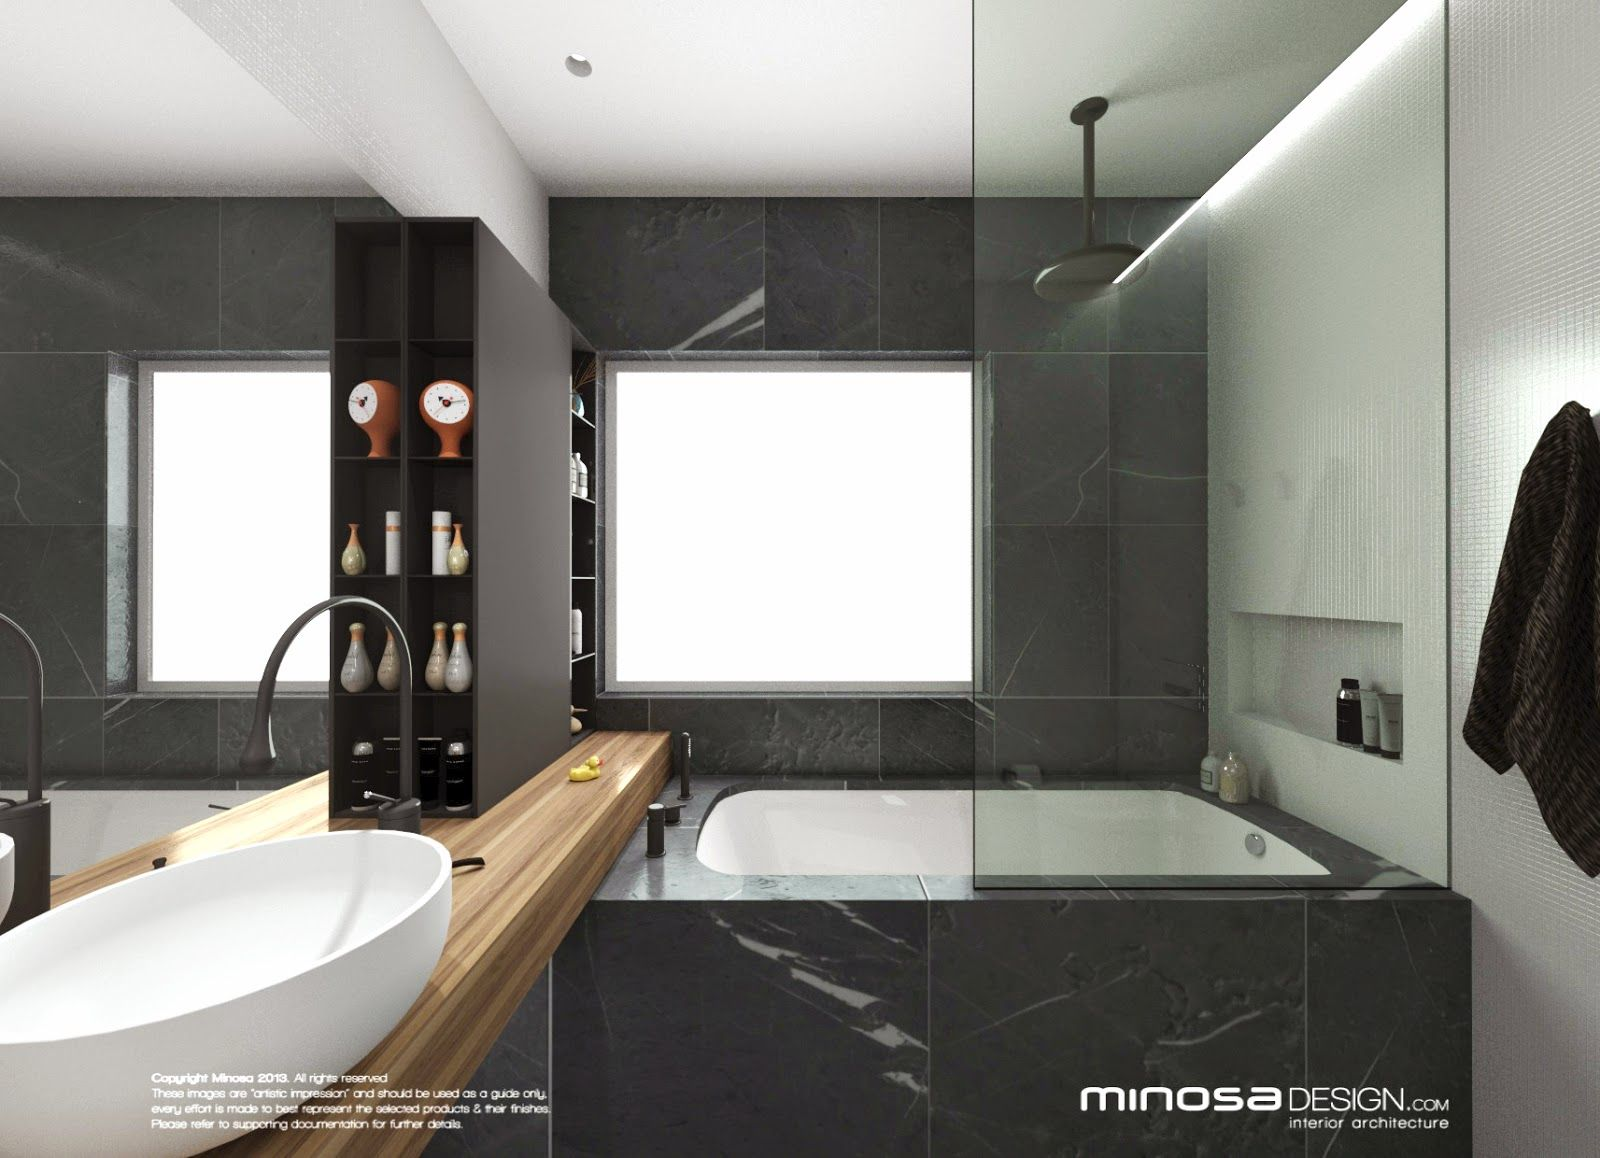 Modern kitchen and bathroom design solutionsaward winning